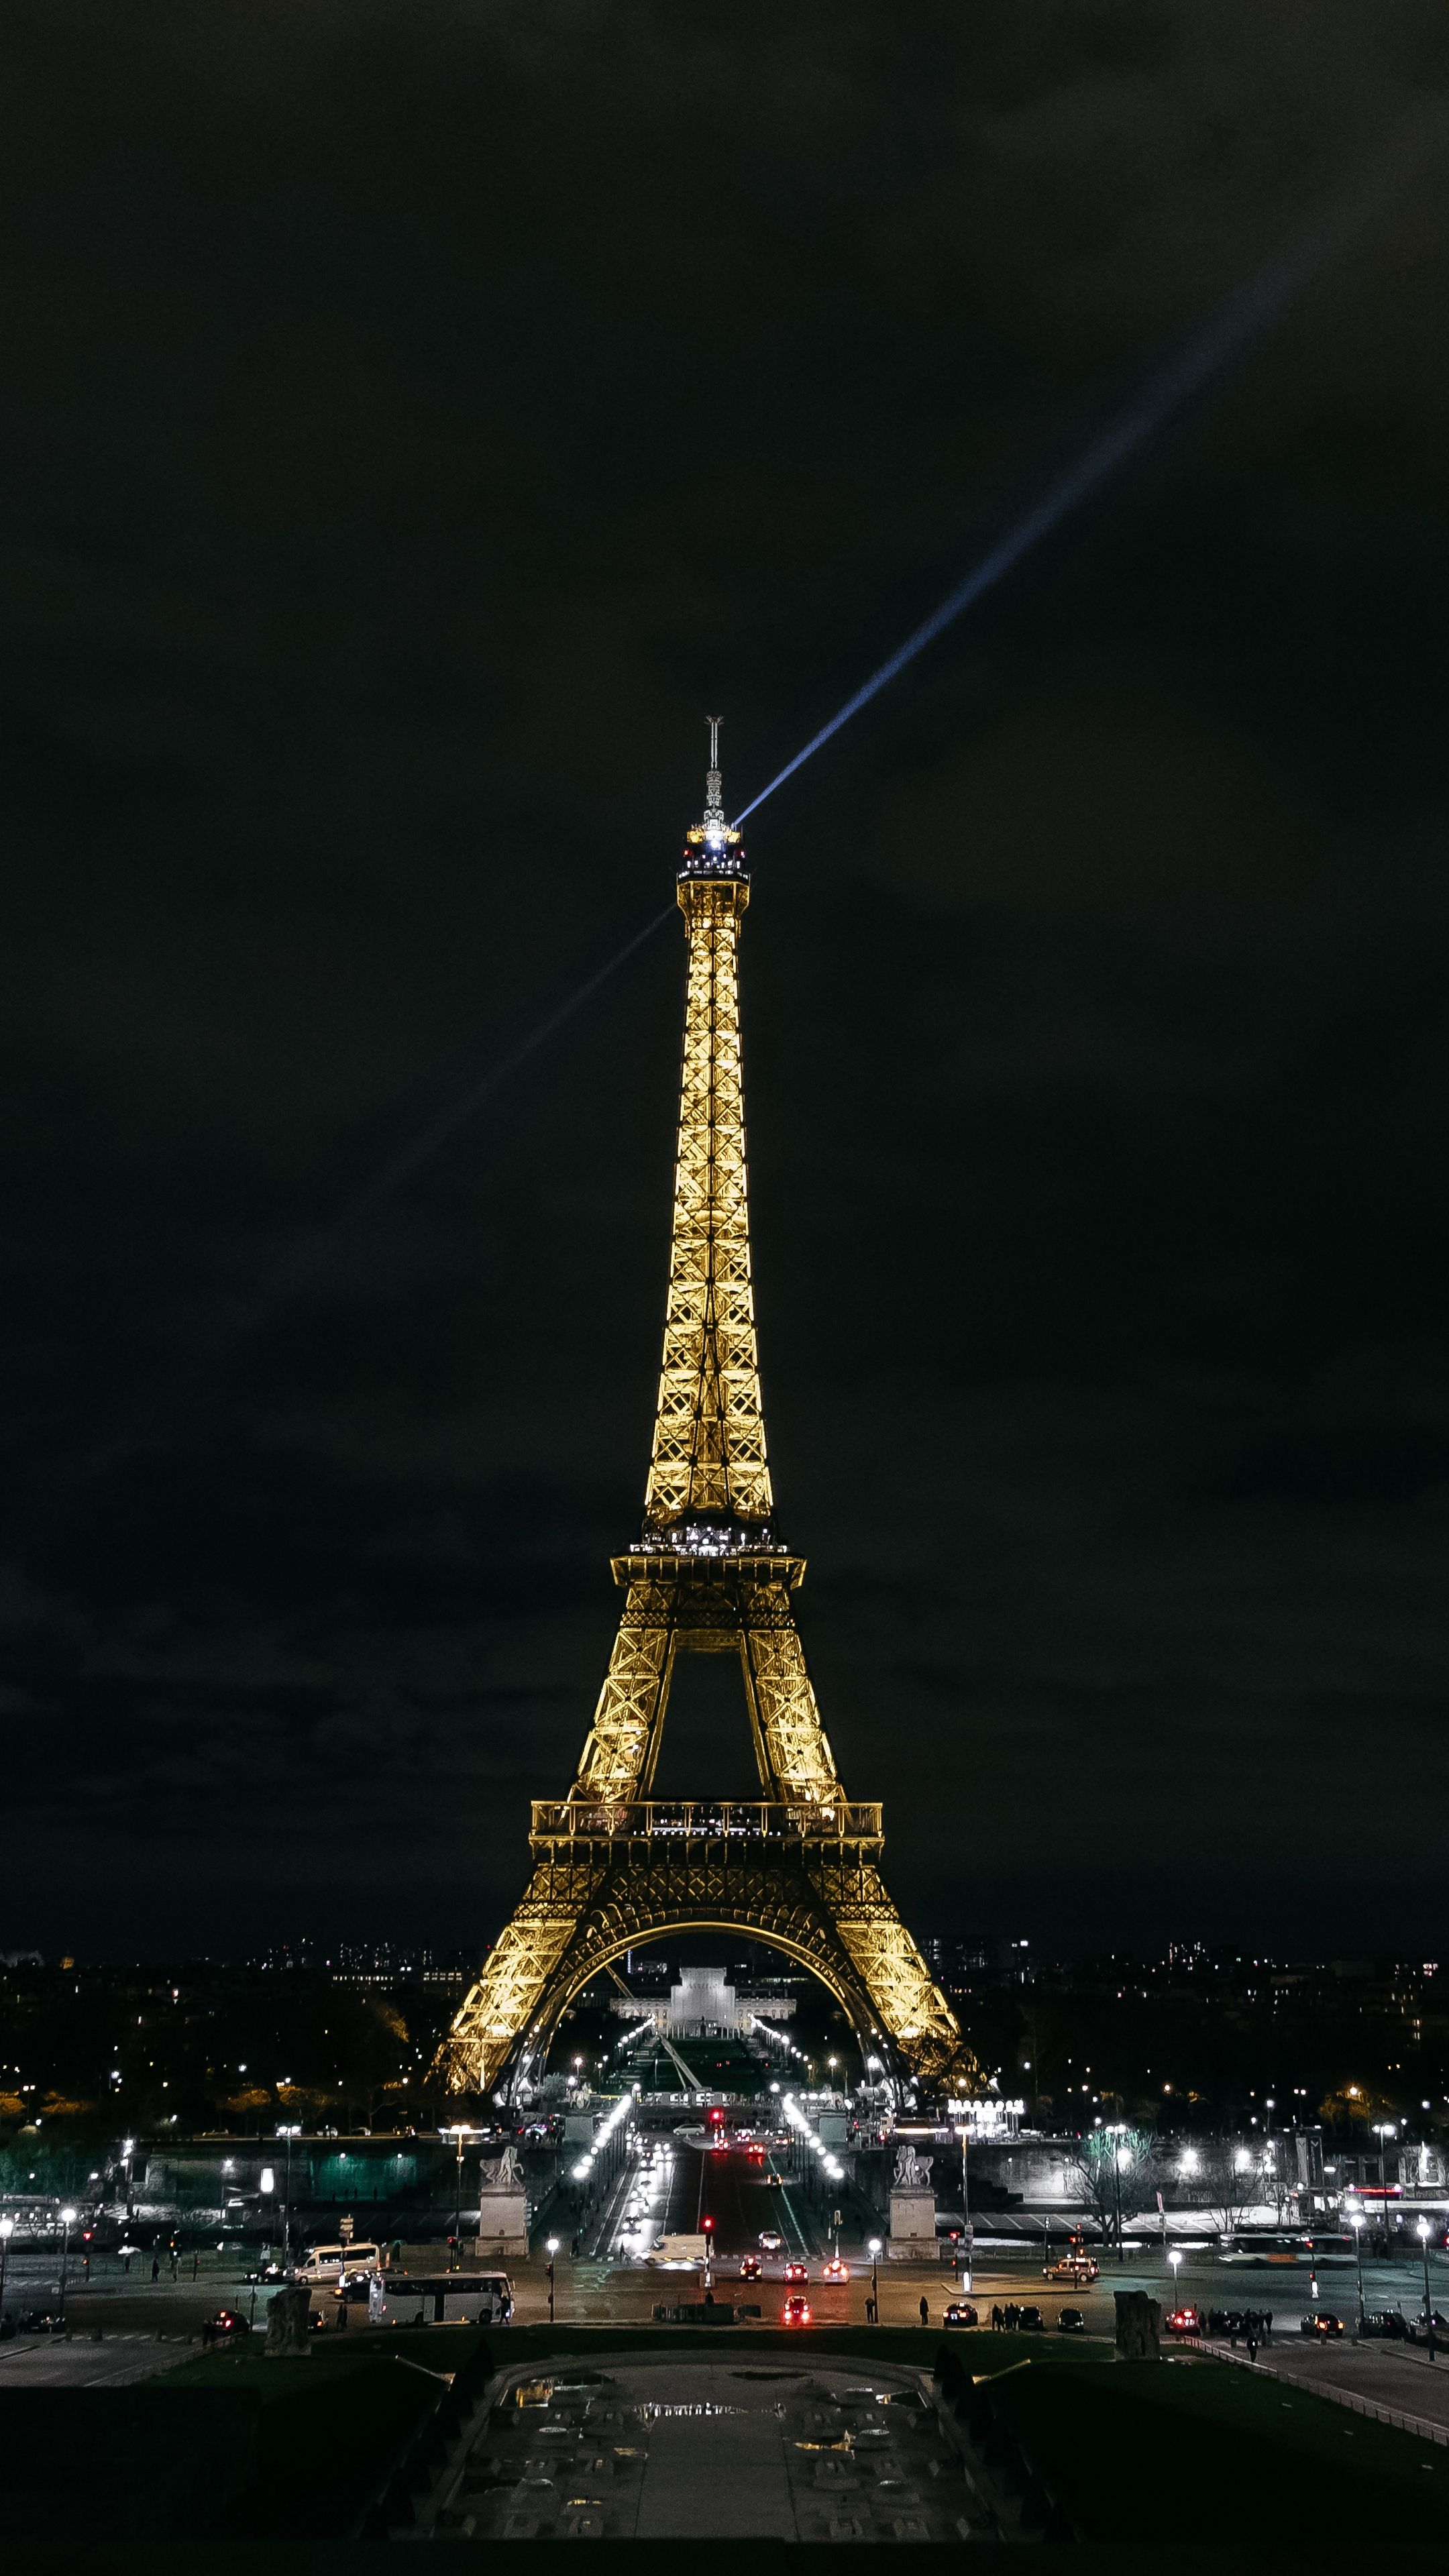 Places eiffel tower, paris, night city android